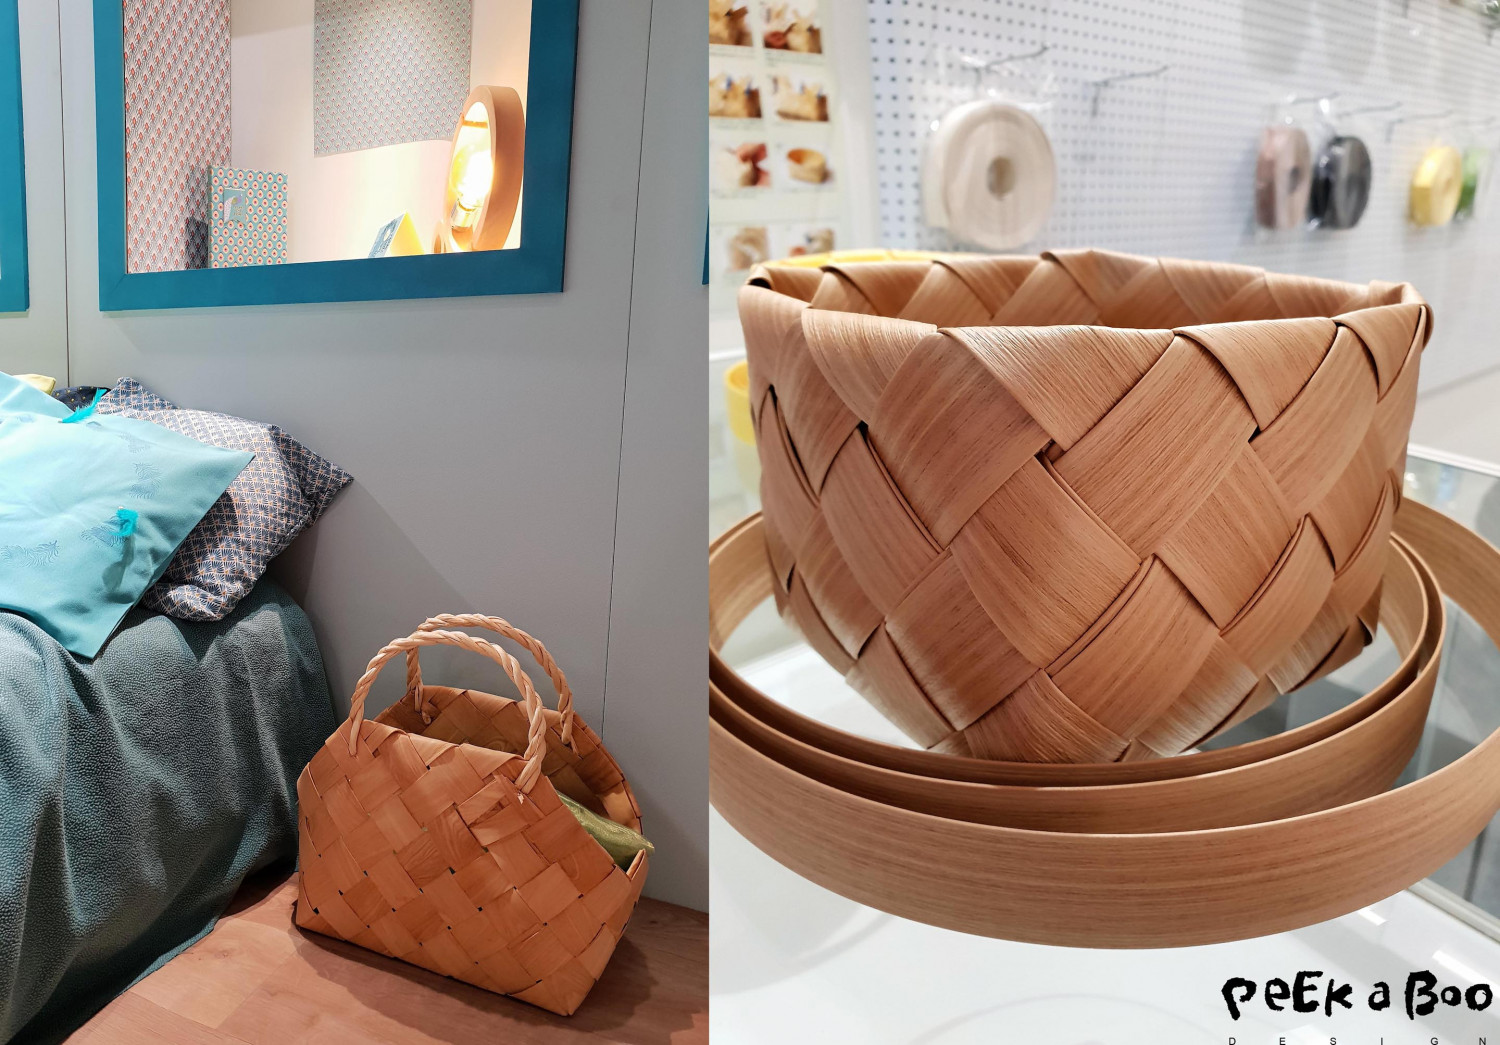 At the right the basket is made of wooden veneer. And the one on the left is made with the plastic strips looking like wood.